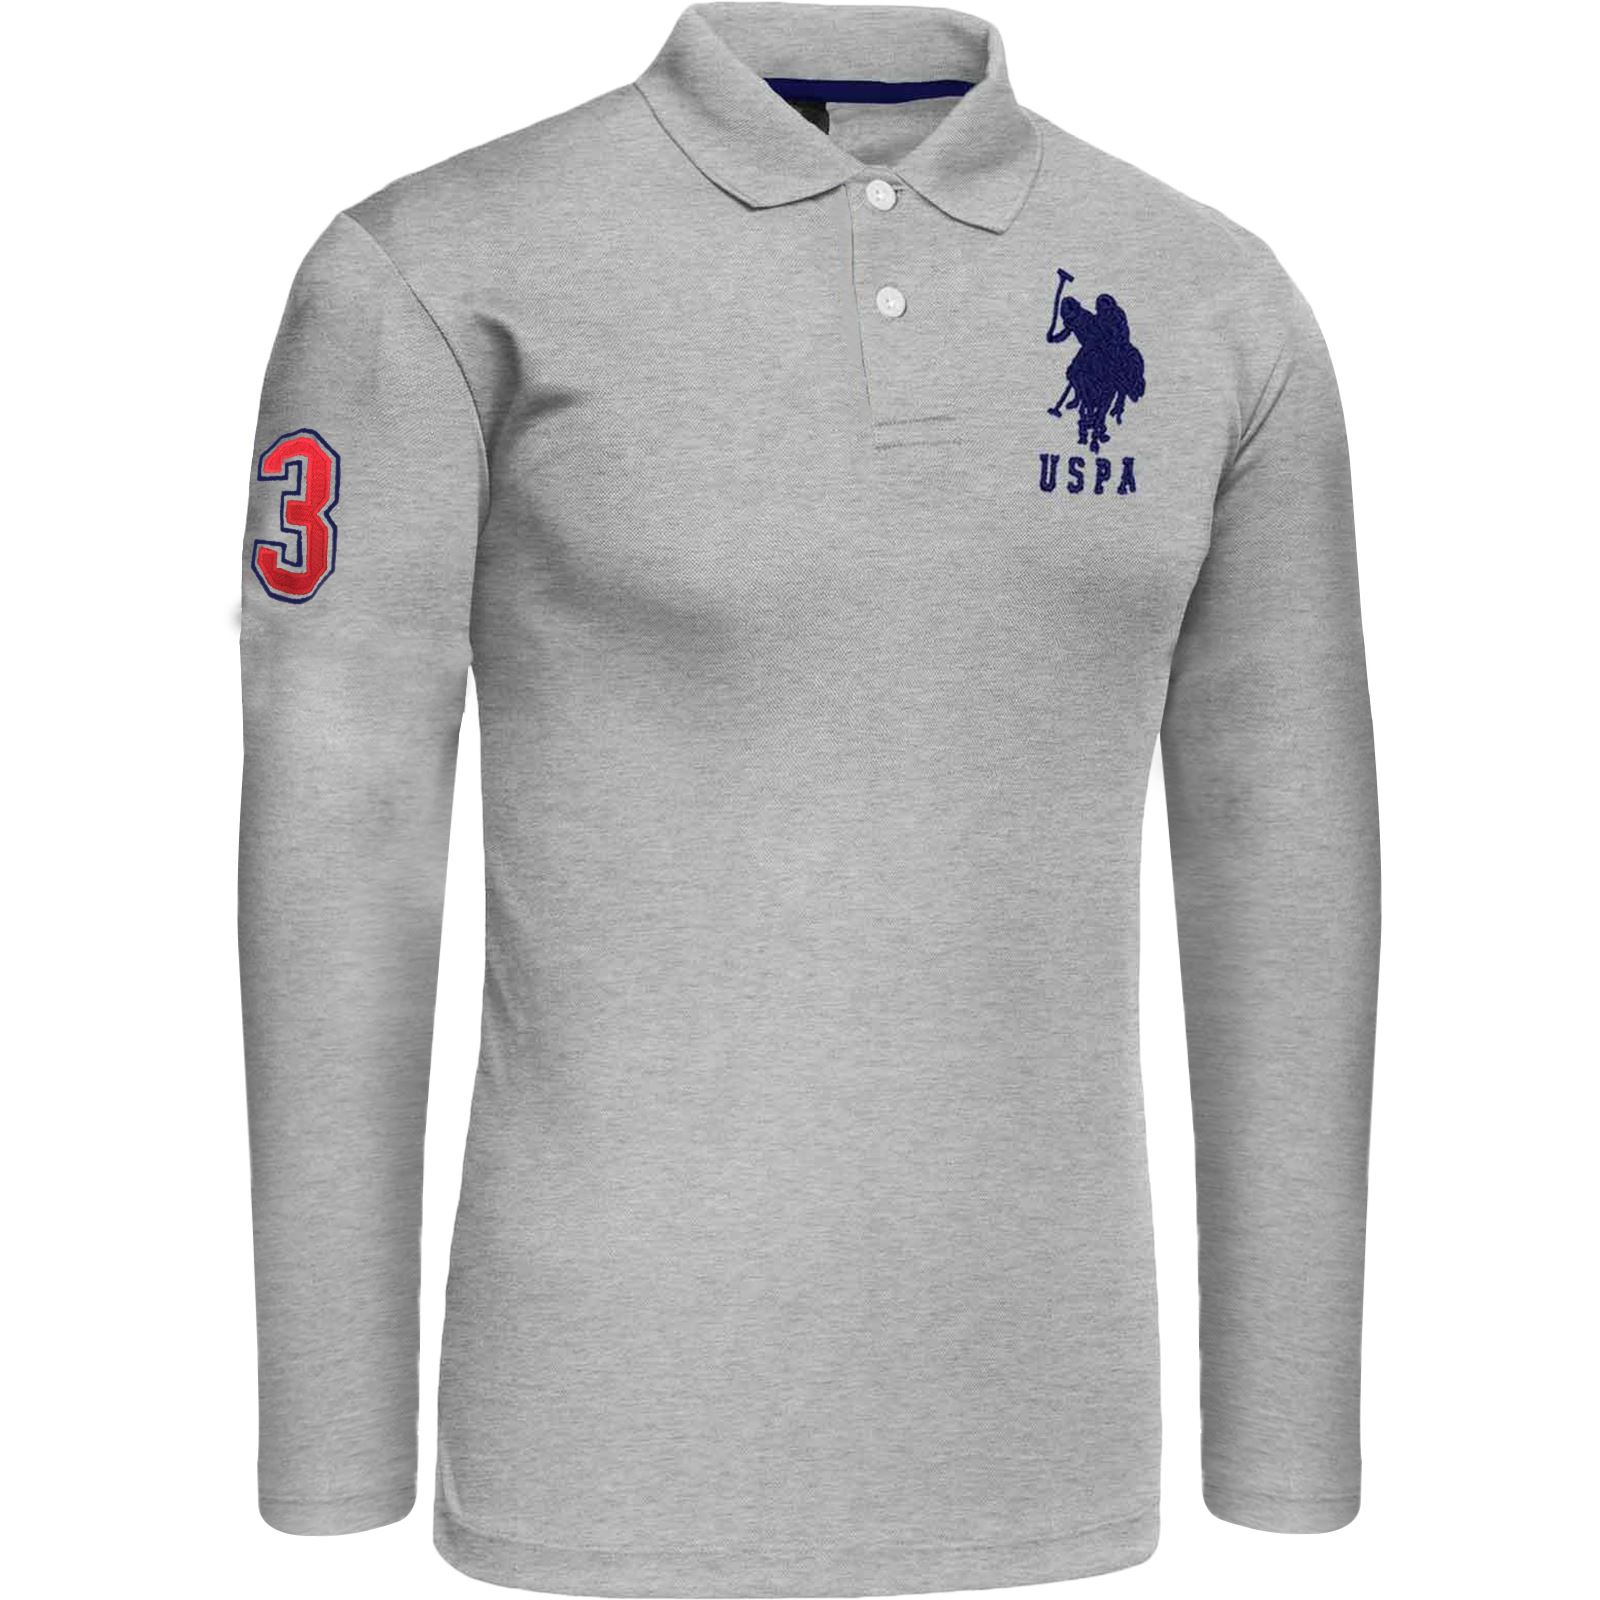 Mens us polo assn long sleeve polo shirt pique top style for Mens collared t shirts